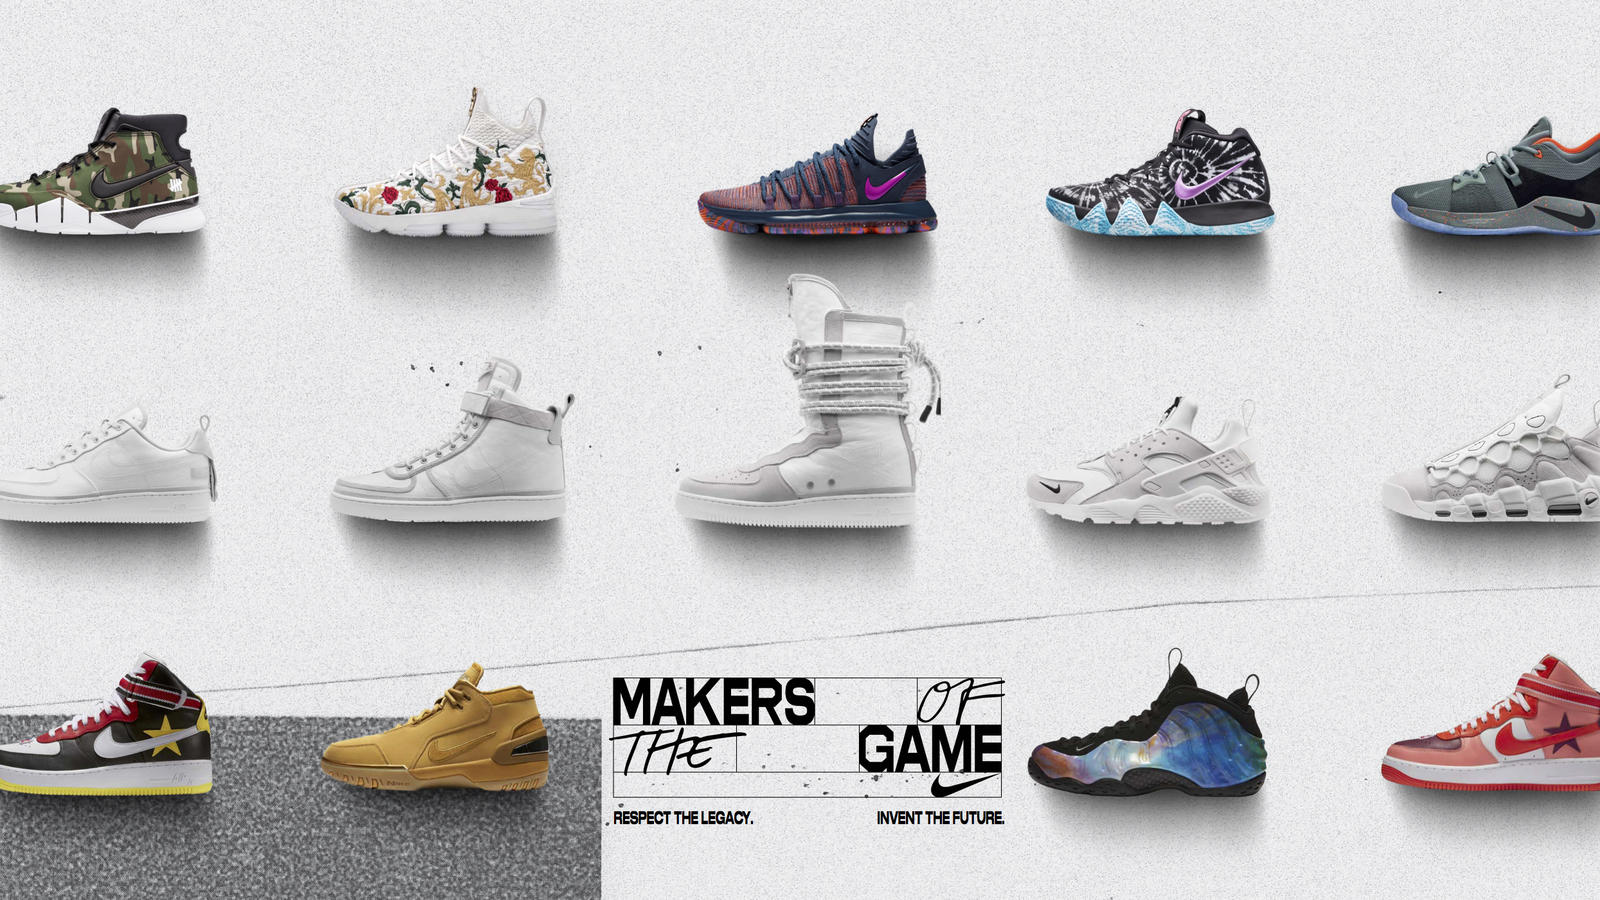 71c90c666137 Nike s 2018 NBA All-Star Line Up - Nike News